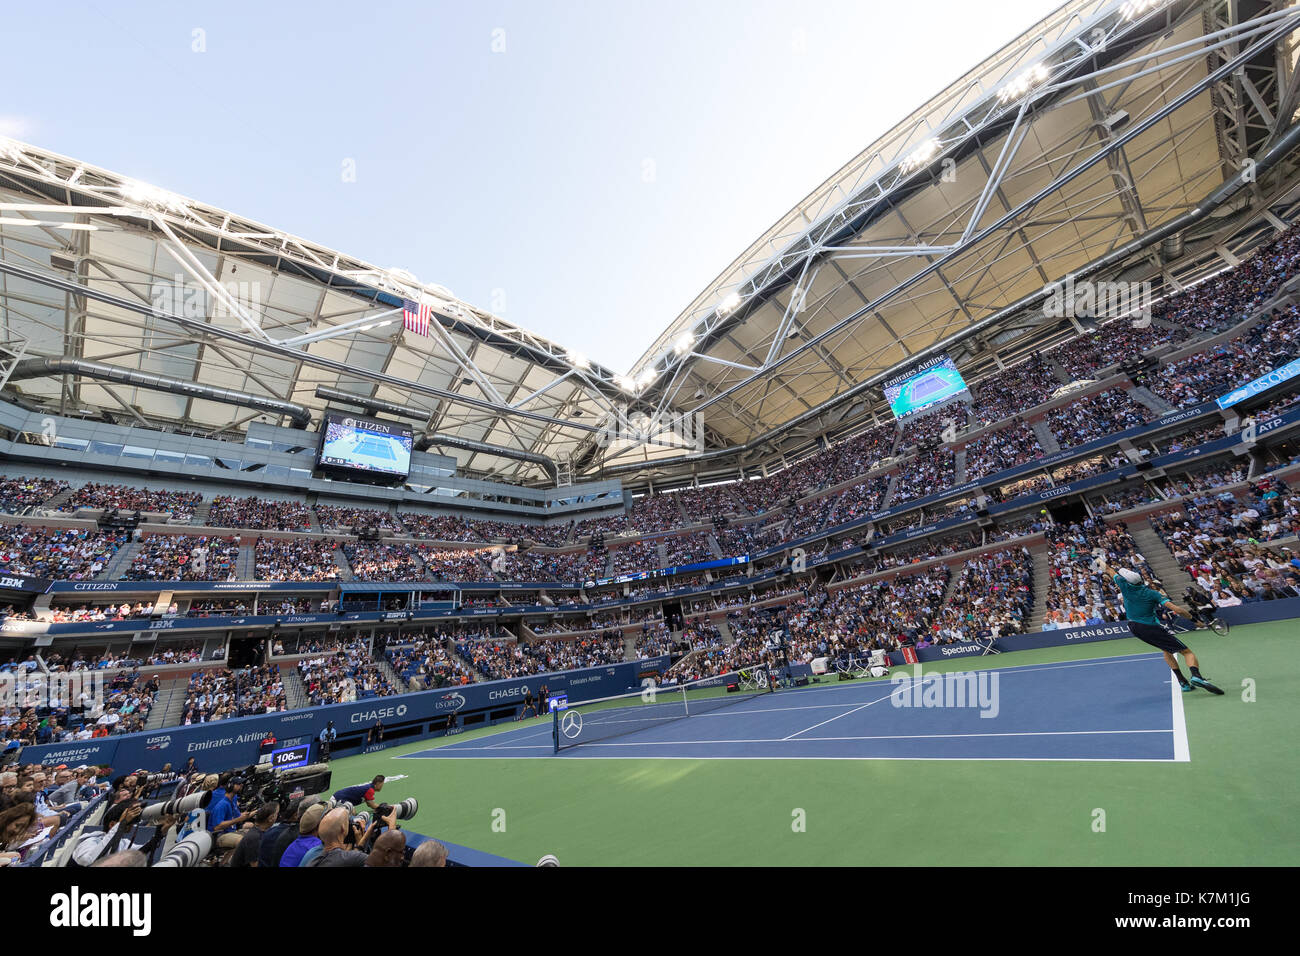 Rafael Nadal (ESP) and Kevin Anderson (RSA)playing in the Men's Singles Final  at the 2017 US Open Tennis Championships - Stock Image